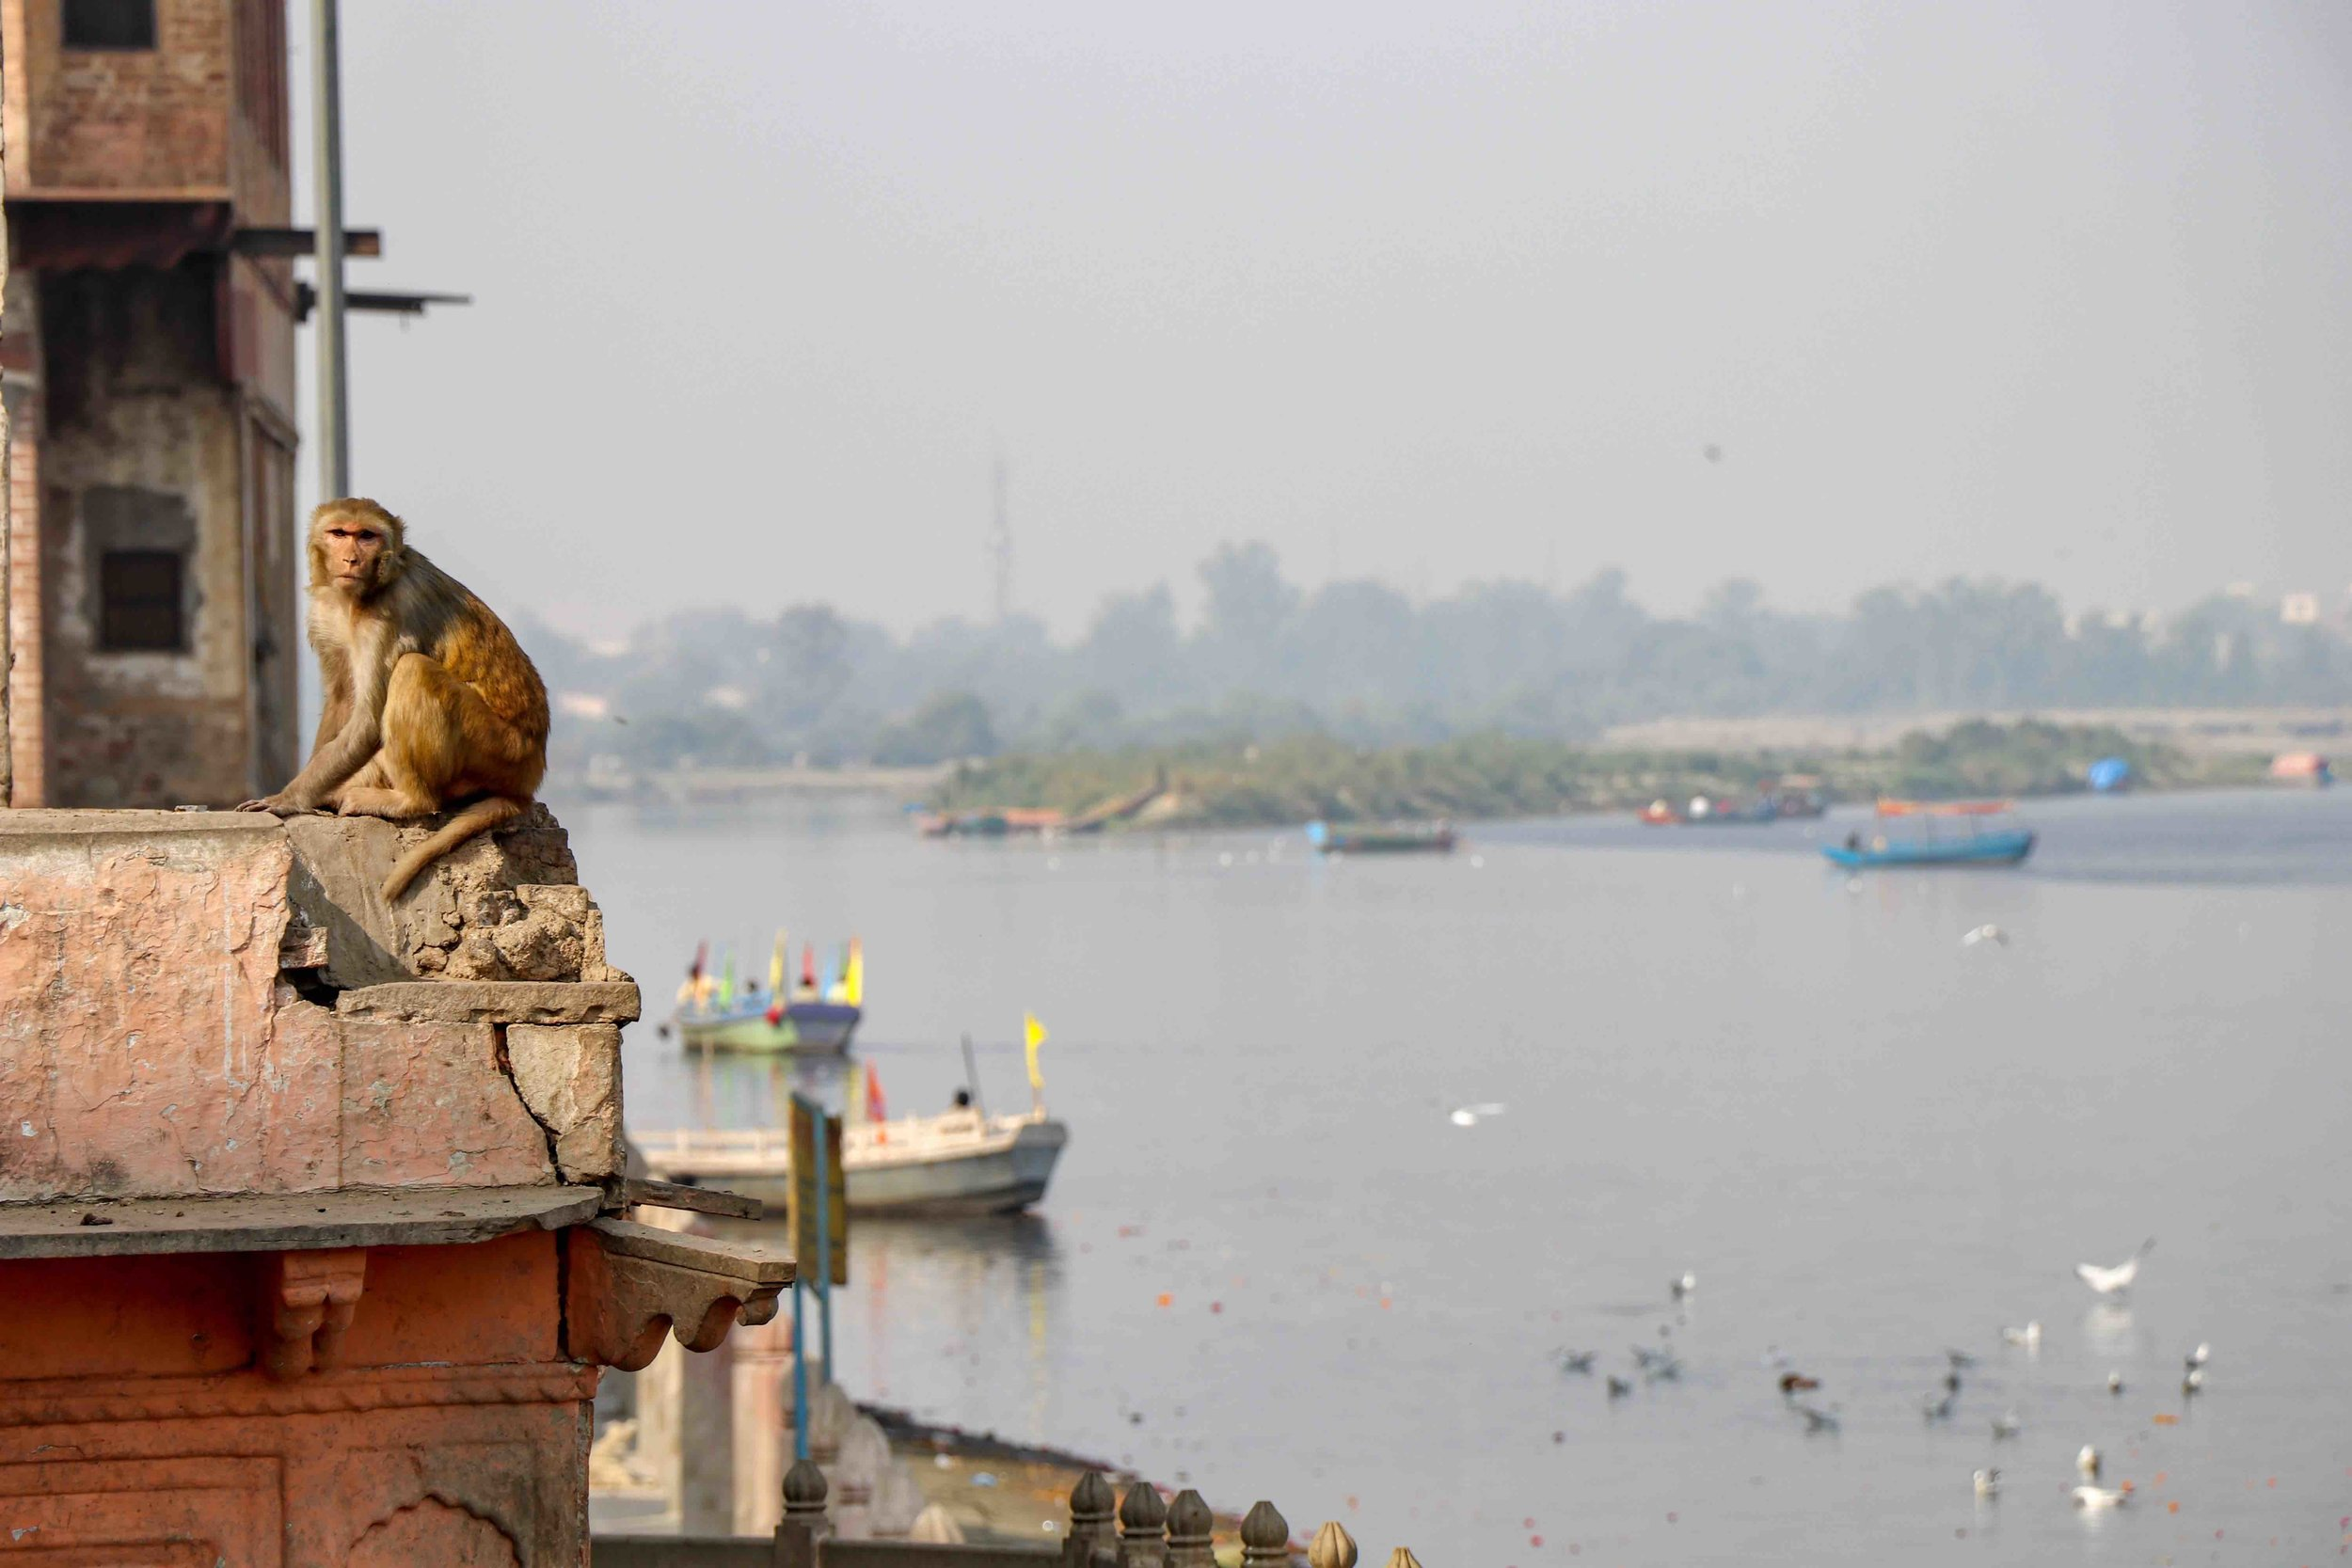 Monkey on look-out over holy river Yamuna in Mathura, India.